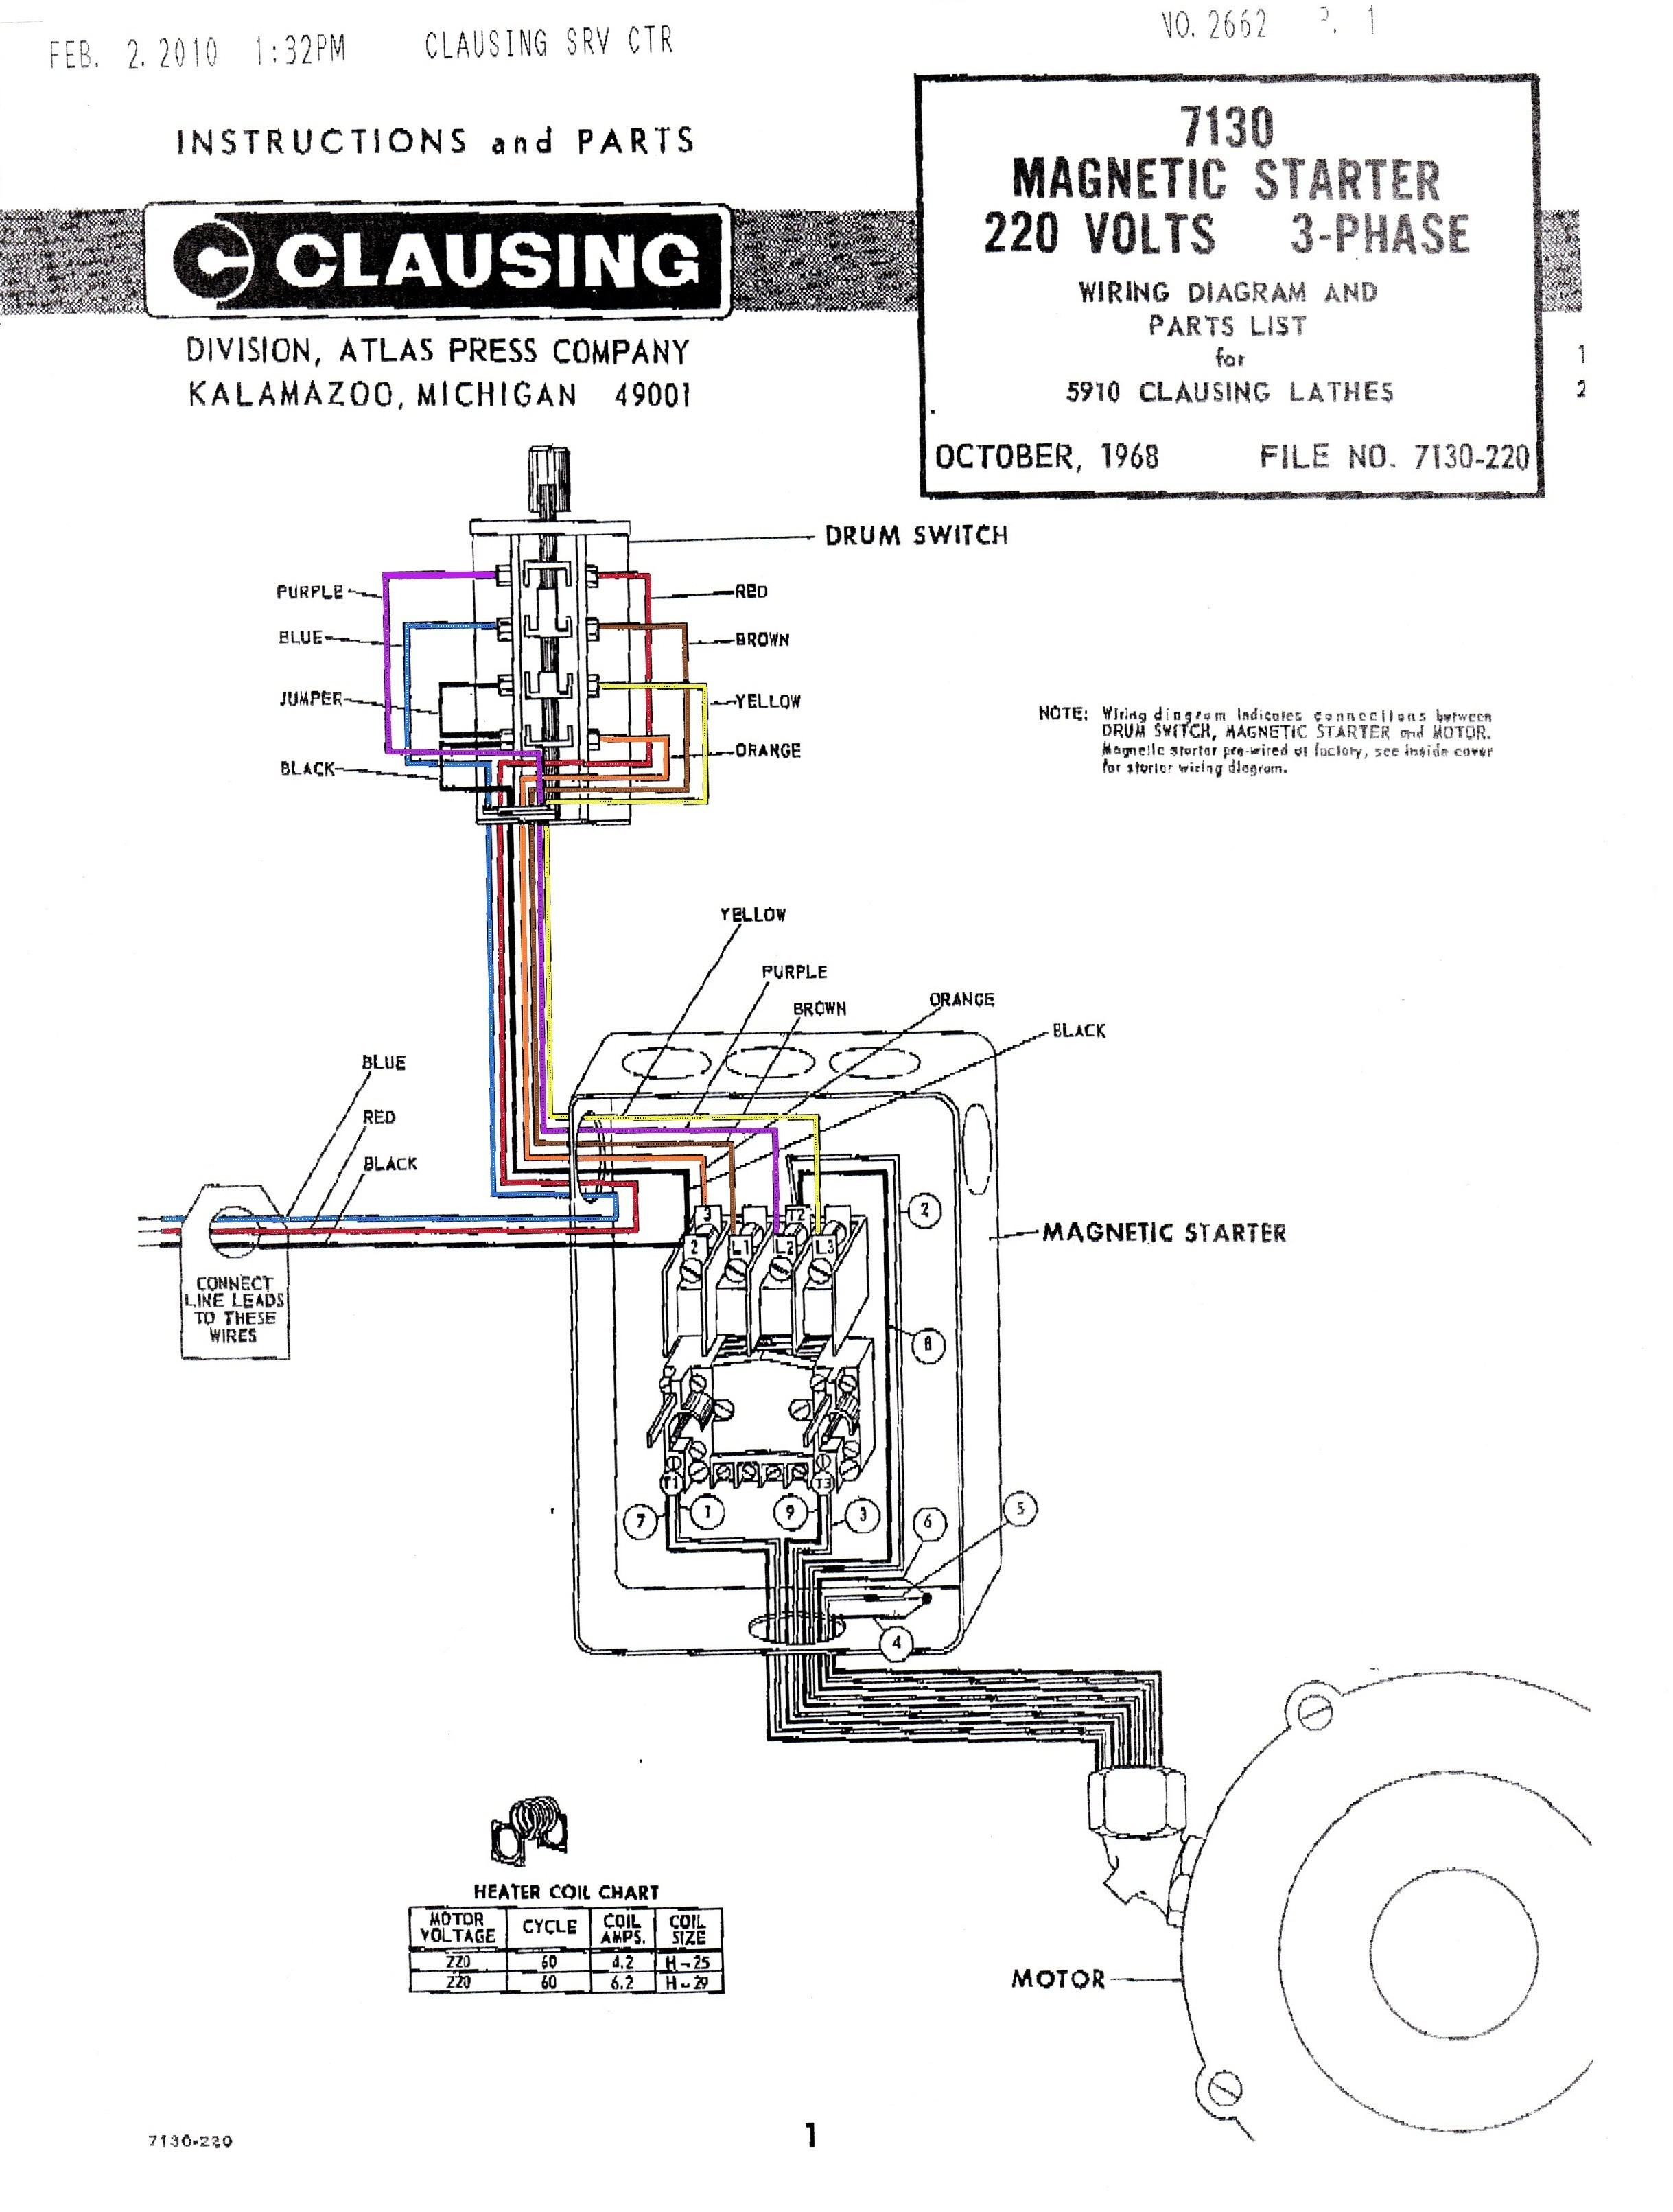 ge motor starter wiring diagram Collection-Wiring Diagram For Bathroom Mirror New Electric Motor Brush Diagram Wonderful Diagram Ge Motor Starter 18-s